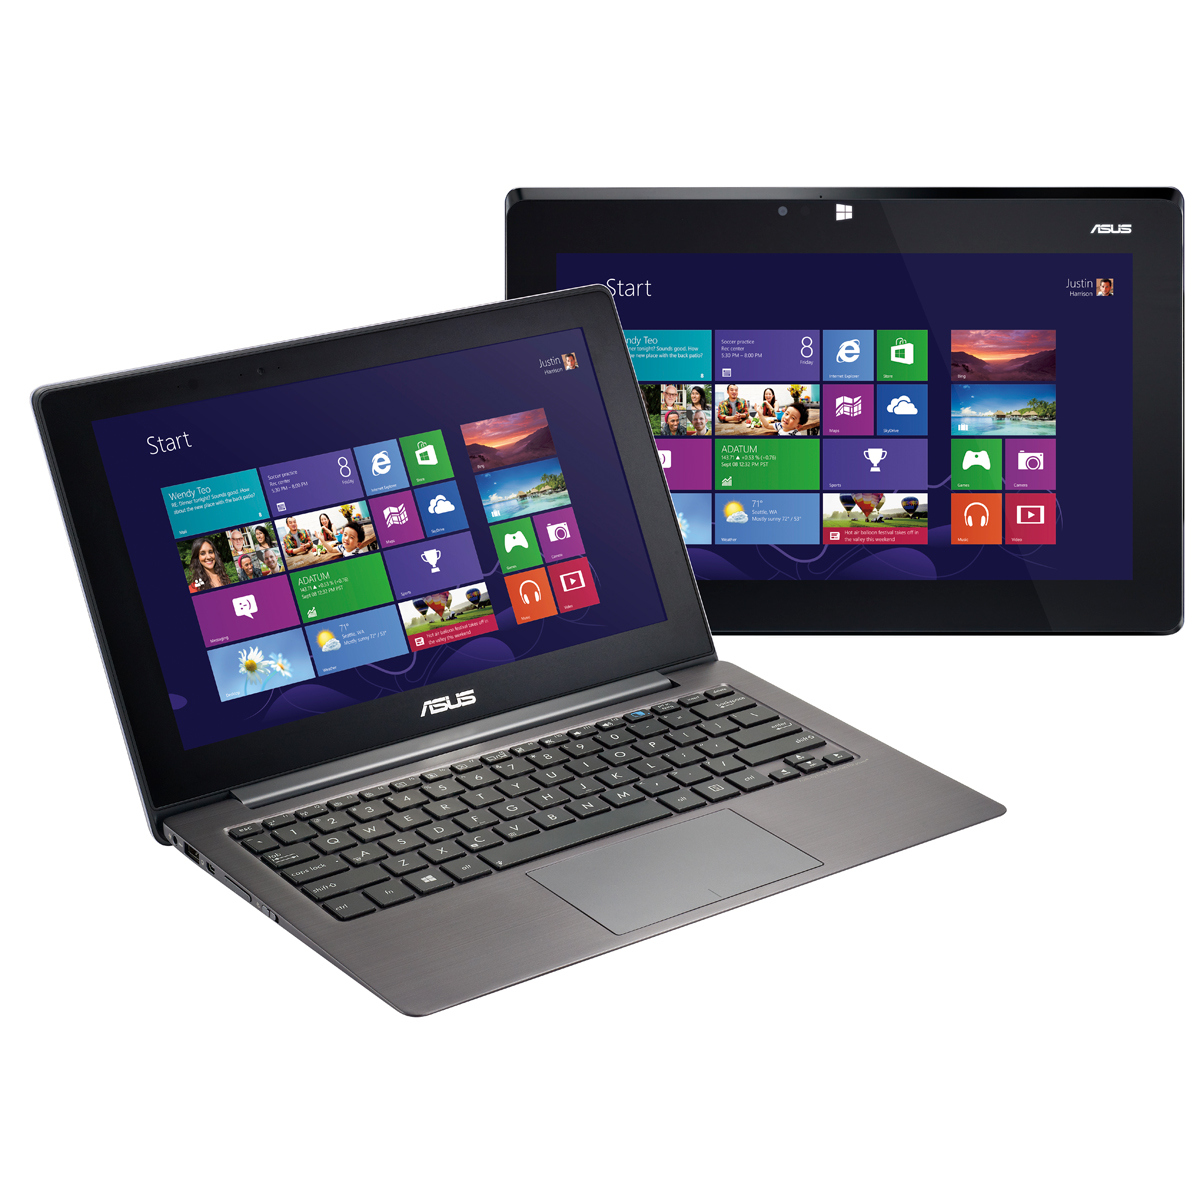 asus taichi31 cx018h 90nb0081 m02640 achat vente pc portable sur. Black Bedroom Furniture Sets. Home Design Ideas